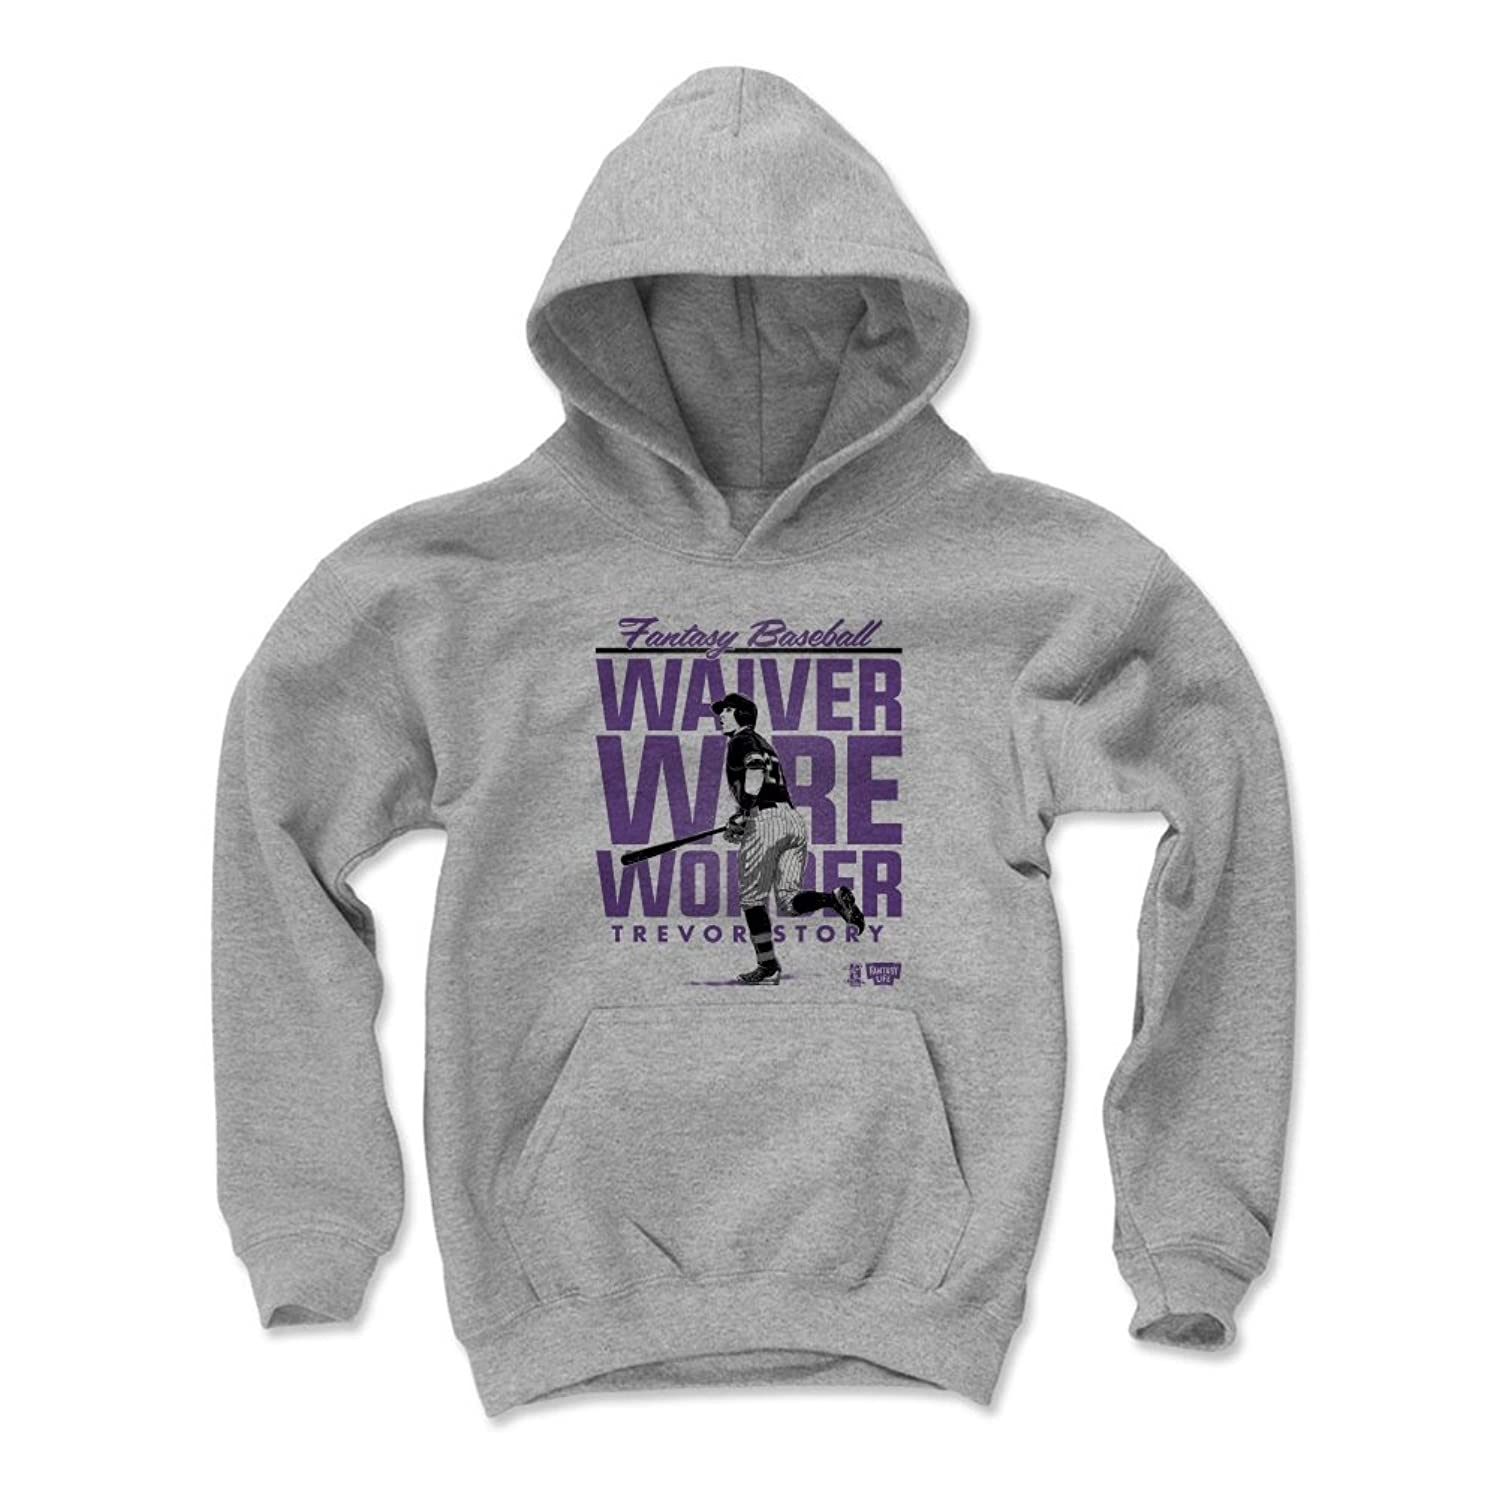 Discount 500 LEVEL Fantasy Baseball Kids Hoodie - Trevor Story Waiver Stack